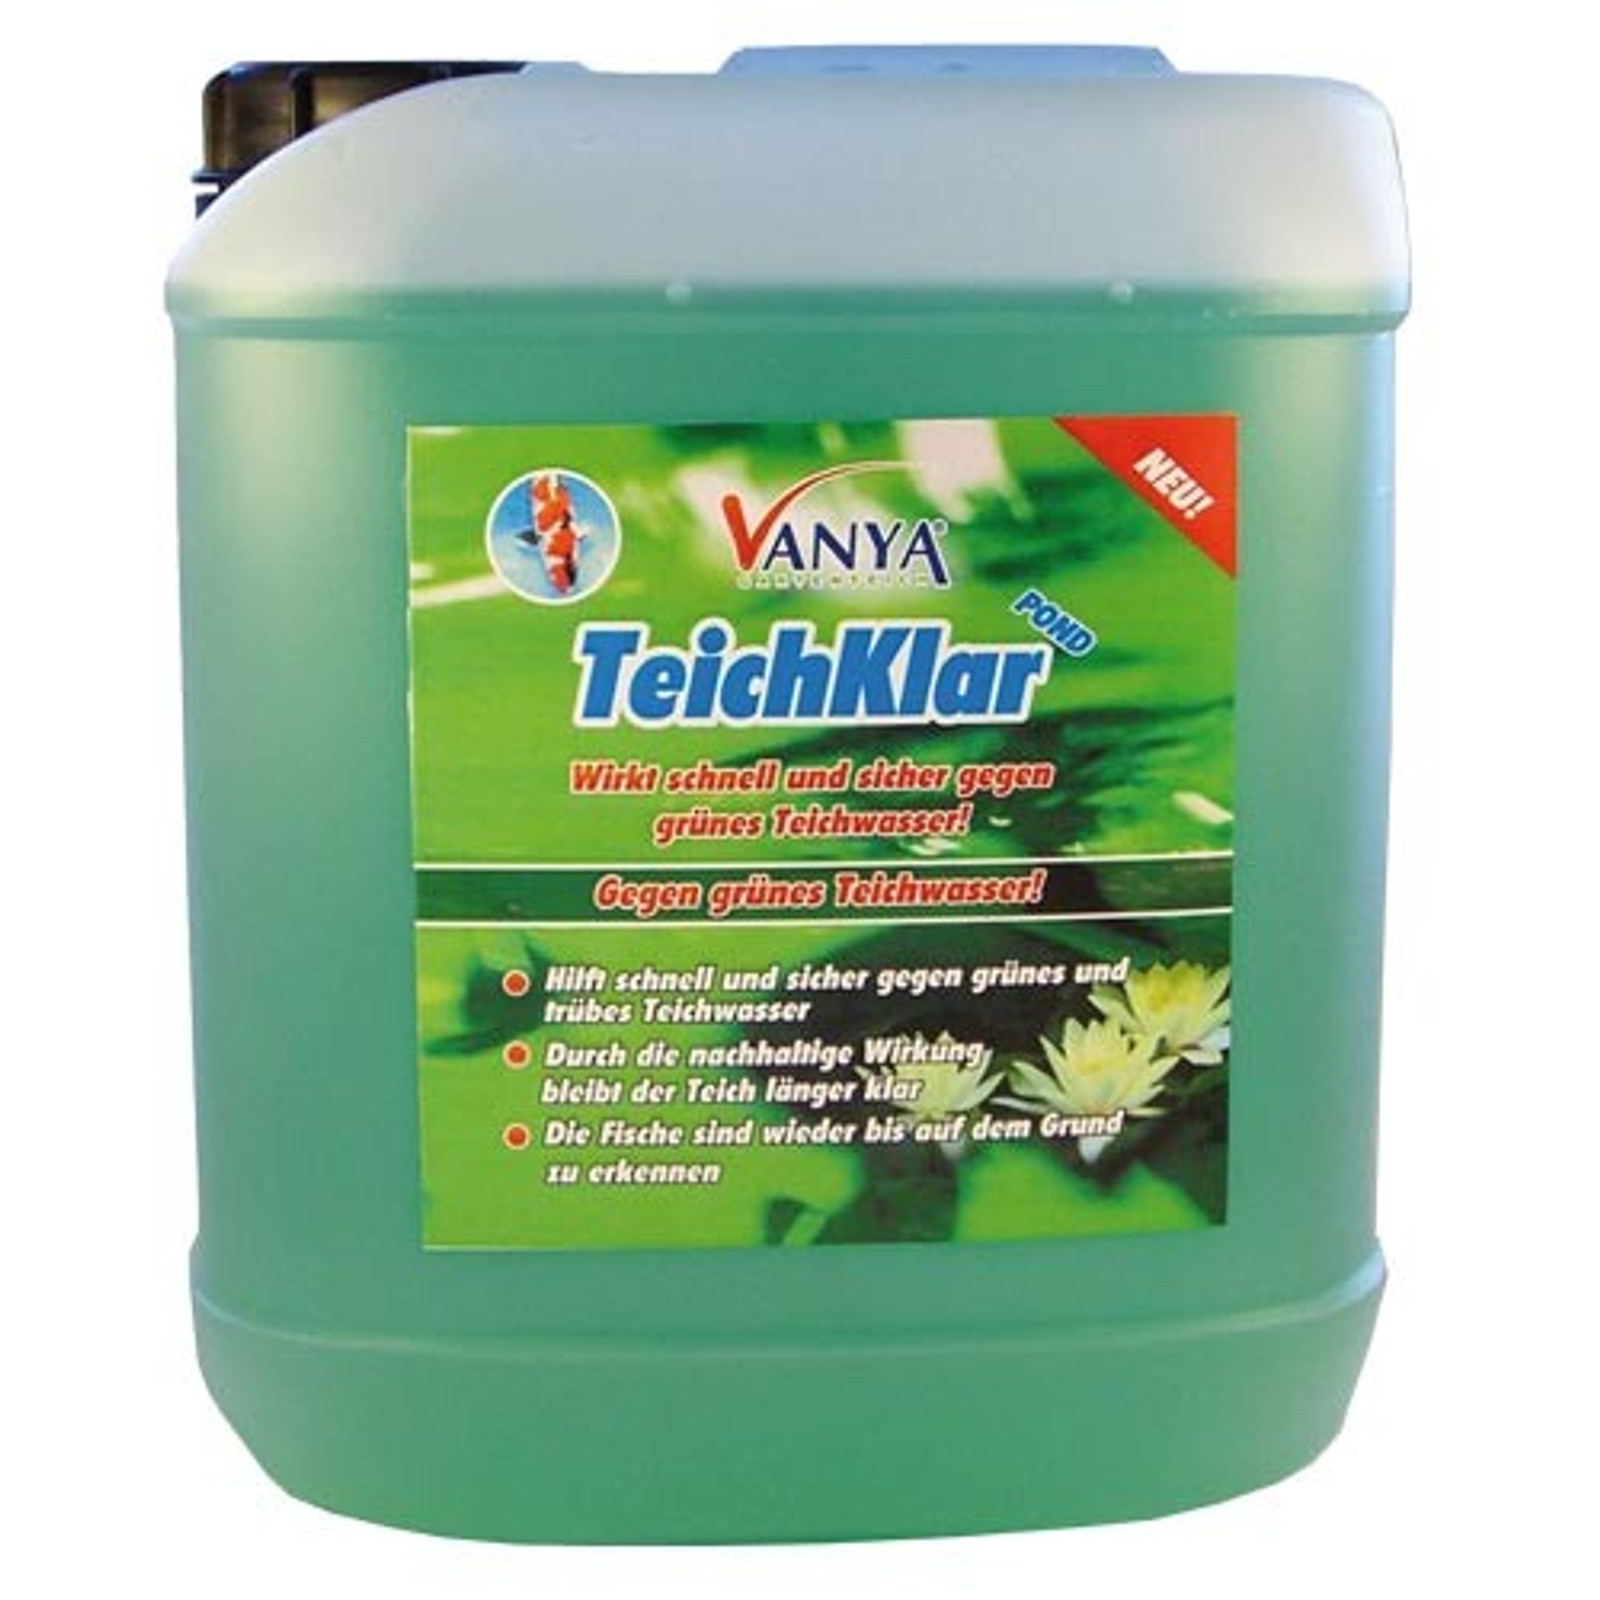 VANYA TeichKlar POND 5.000 ml